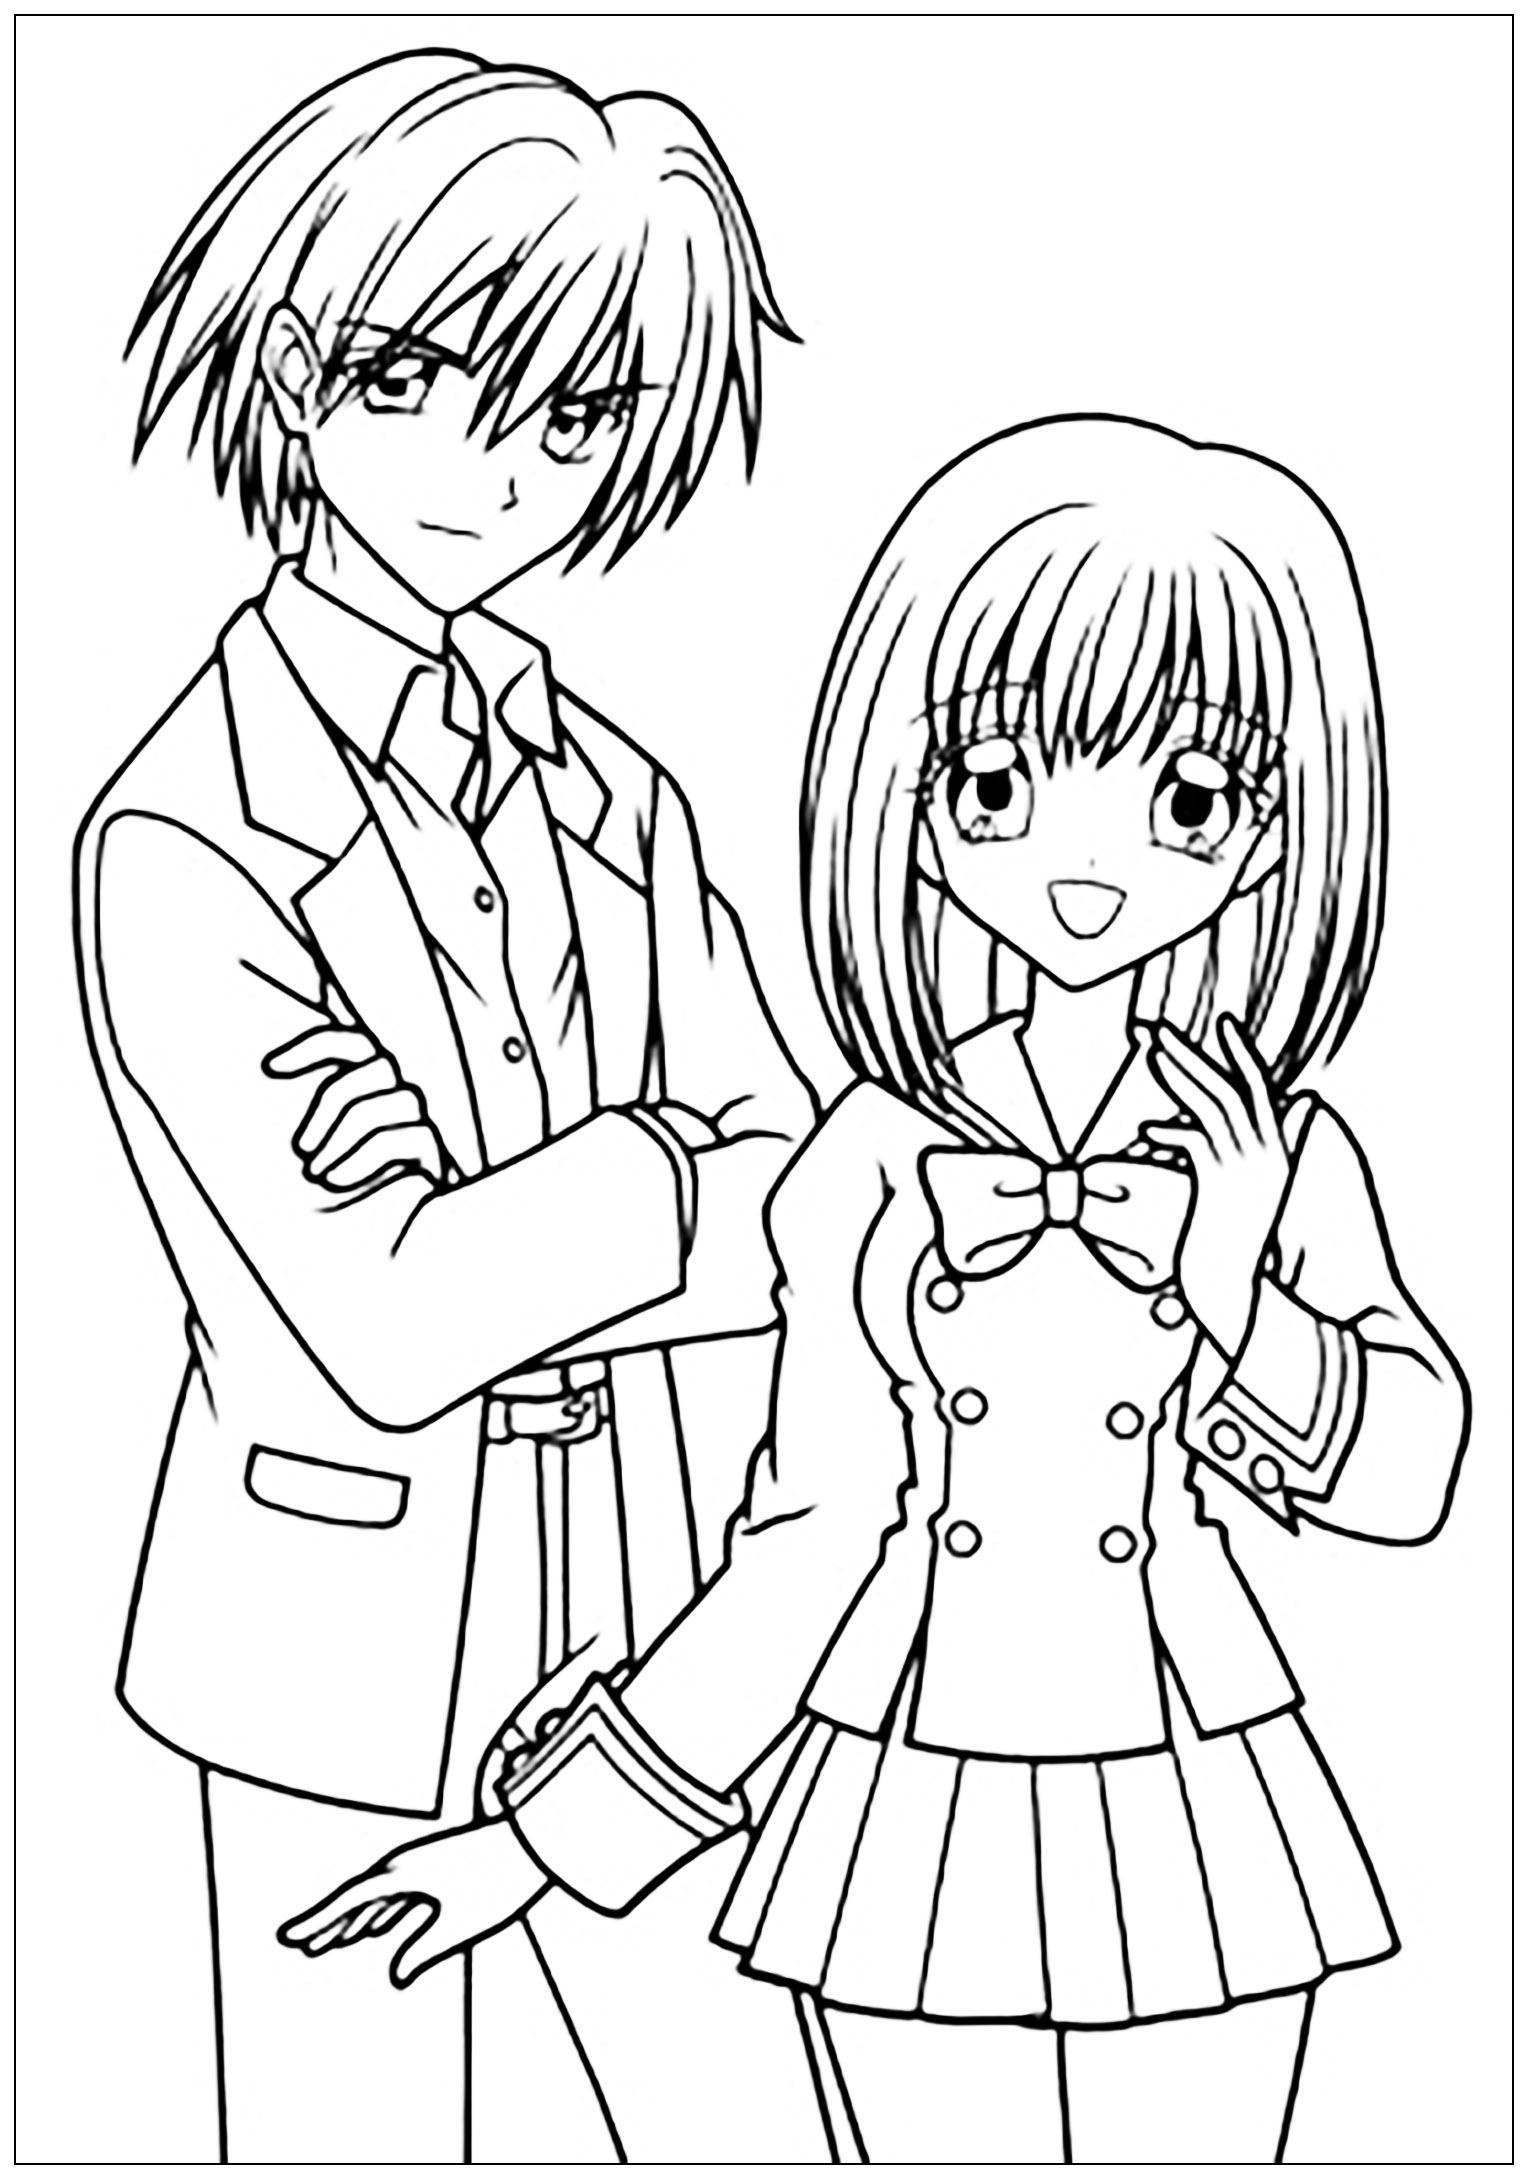 manga anime coloring pages manga coloring pages to download and print for free coloring manga anime pages